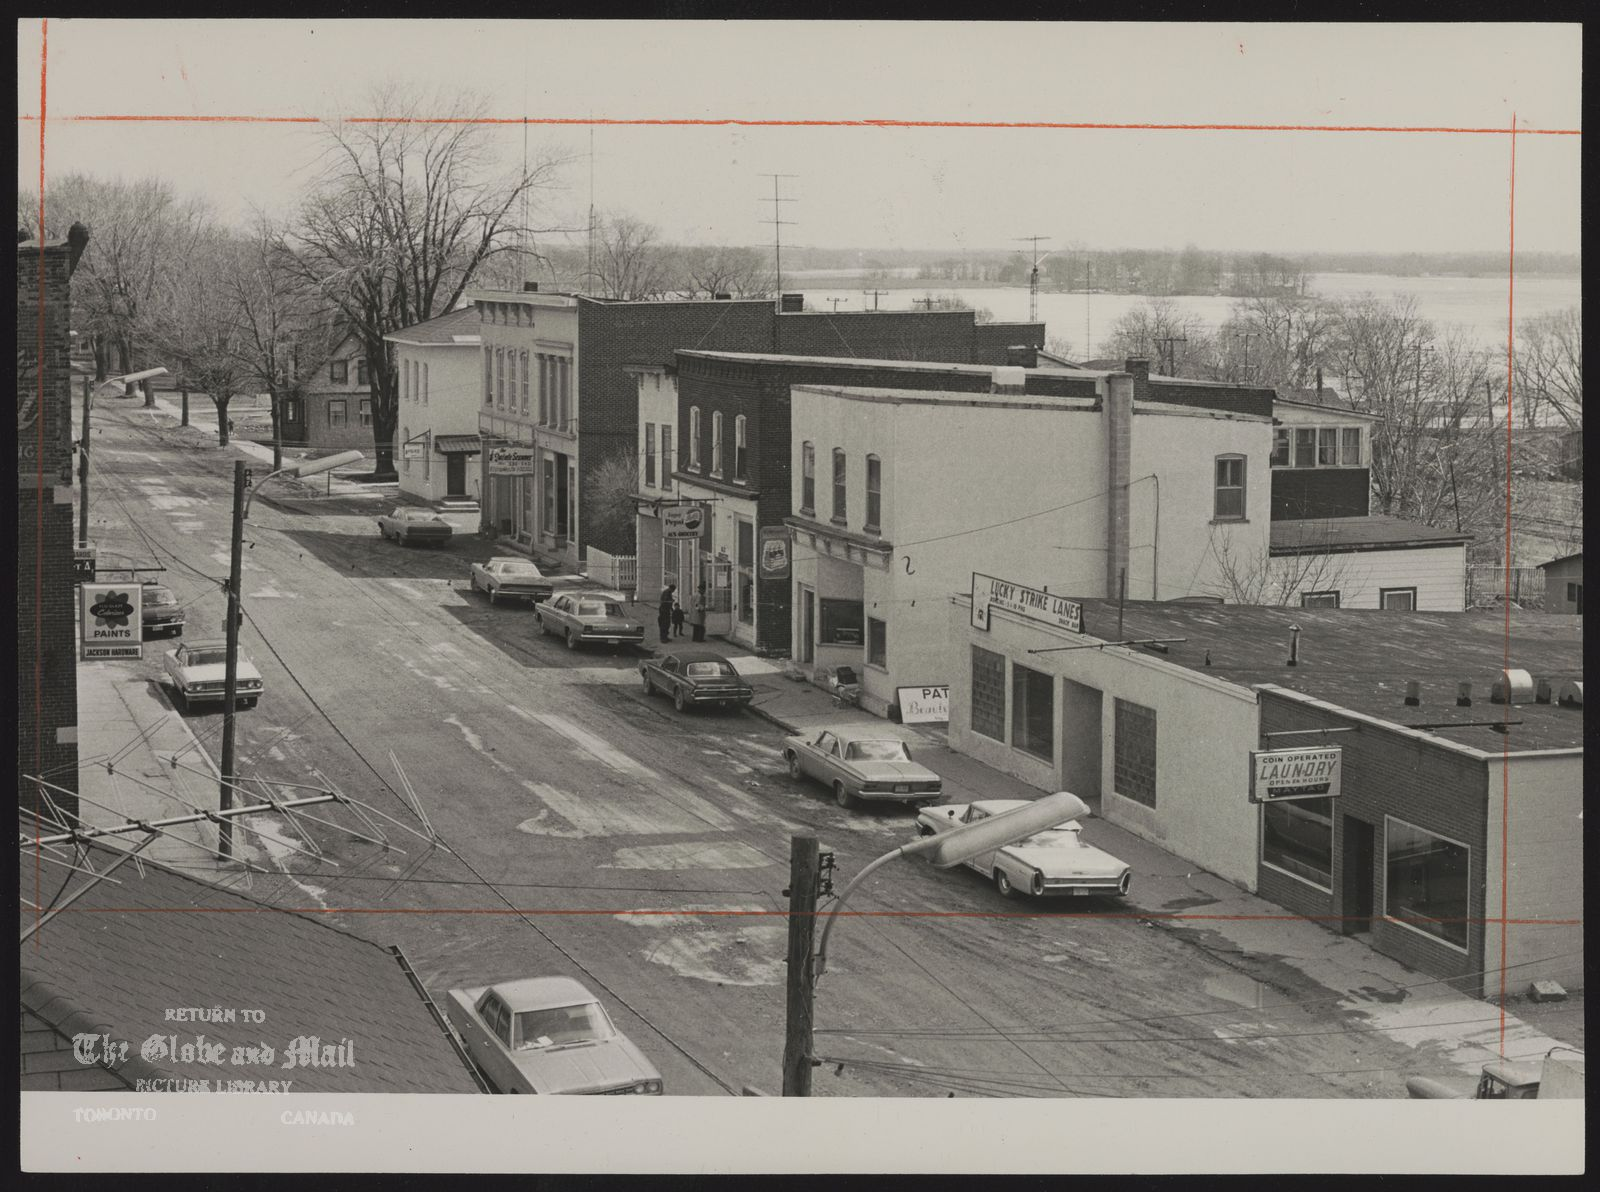 DESERONTO town (Ontario) (Deseronto's main street, with Bay of Quinte, town's source of water, in the background,)